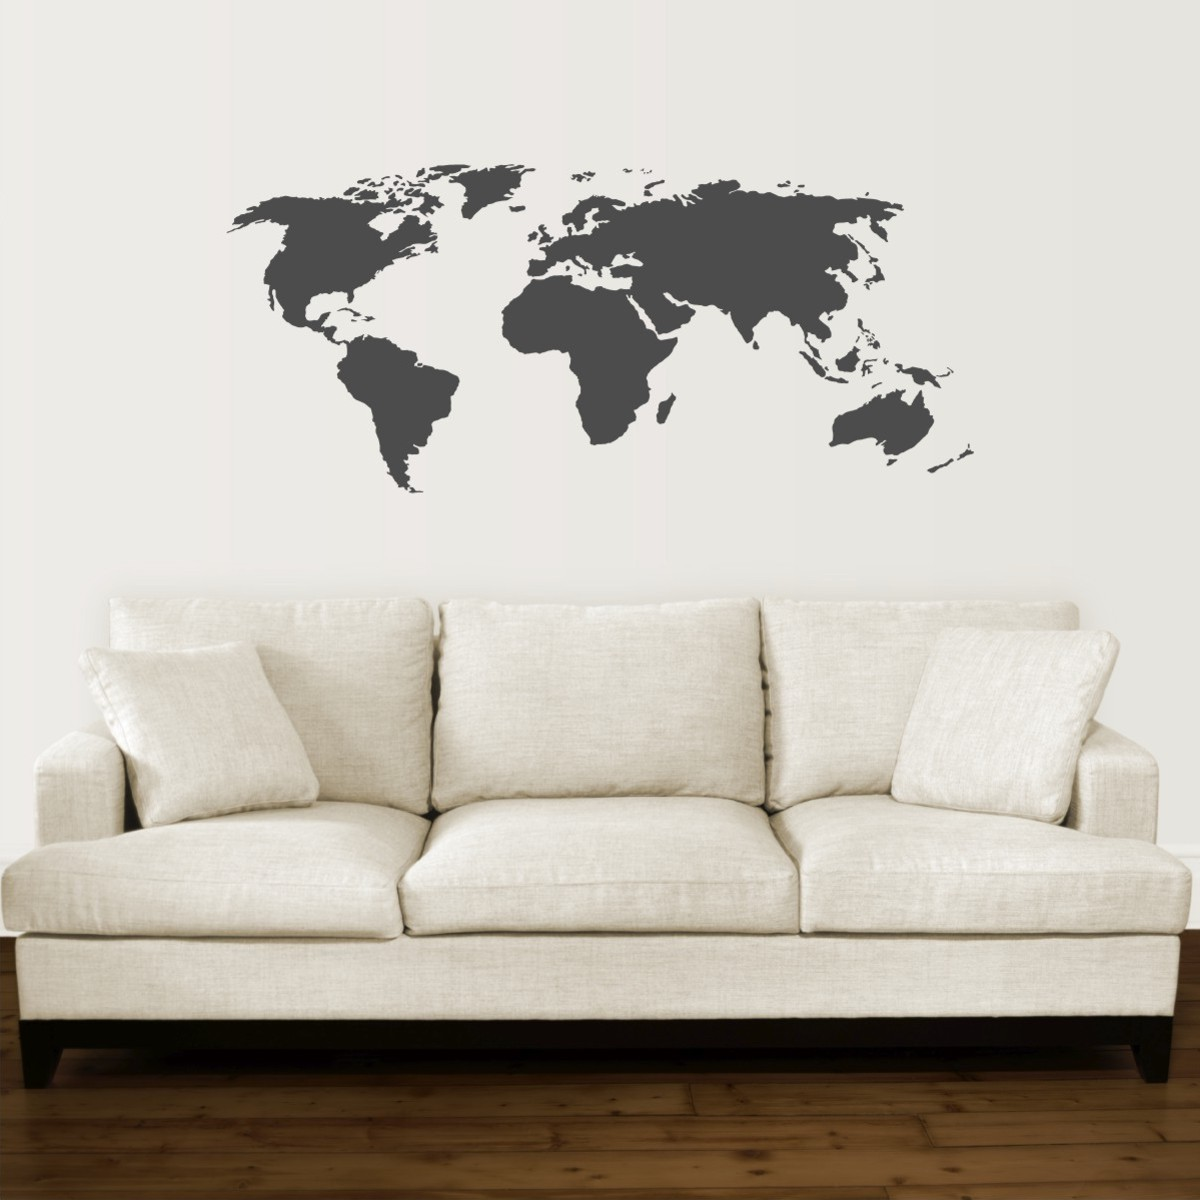 World map wall quotes wall art decal wallquotes world map wall quotes wall art decal gumiabroncs Choice Image